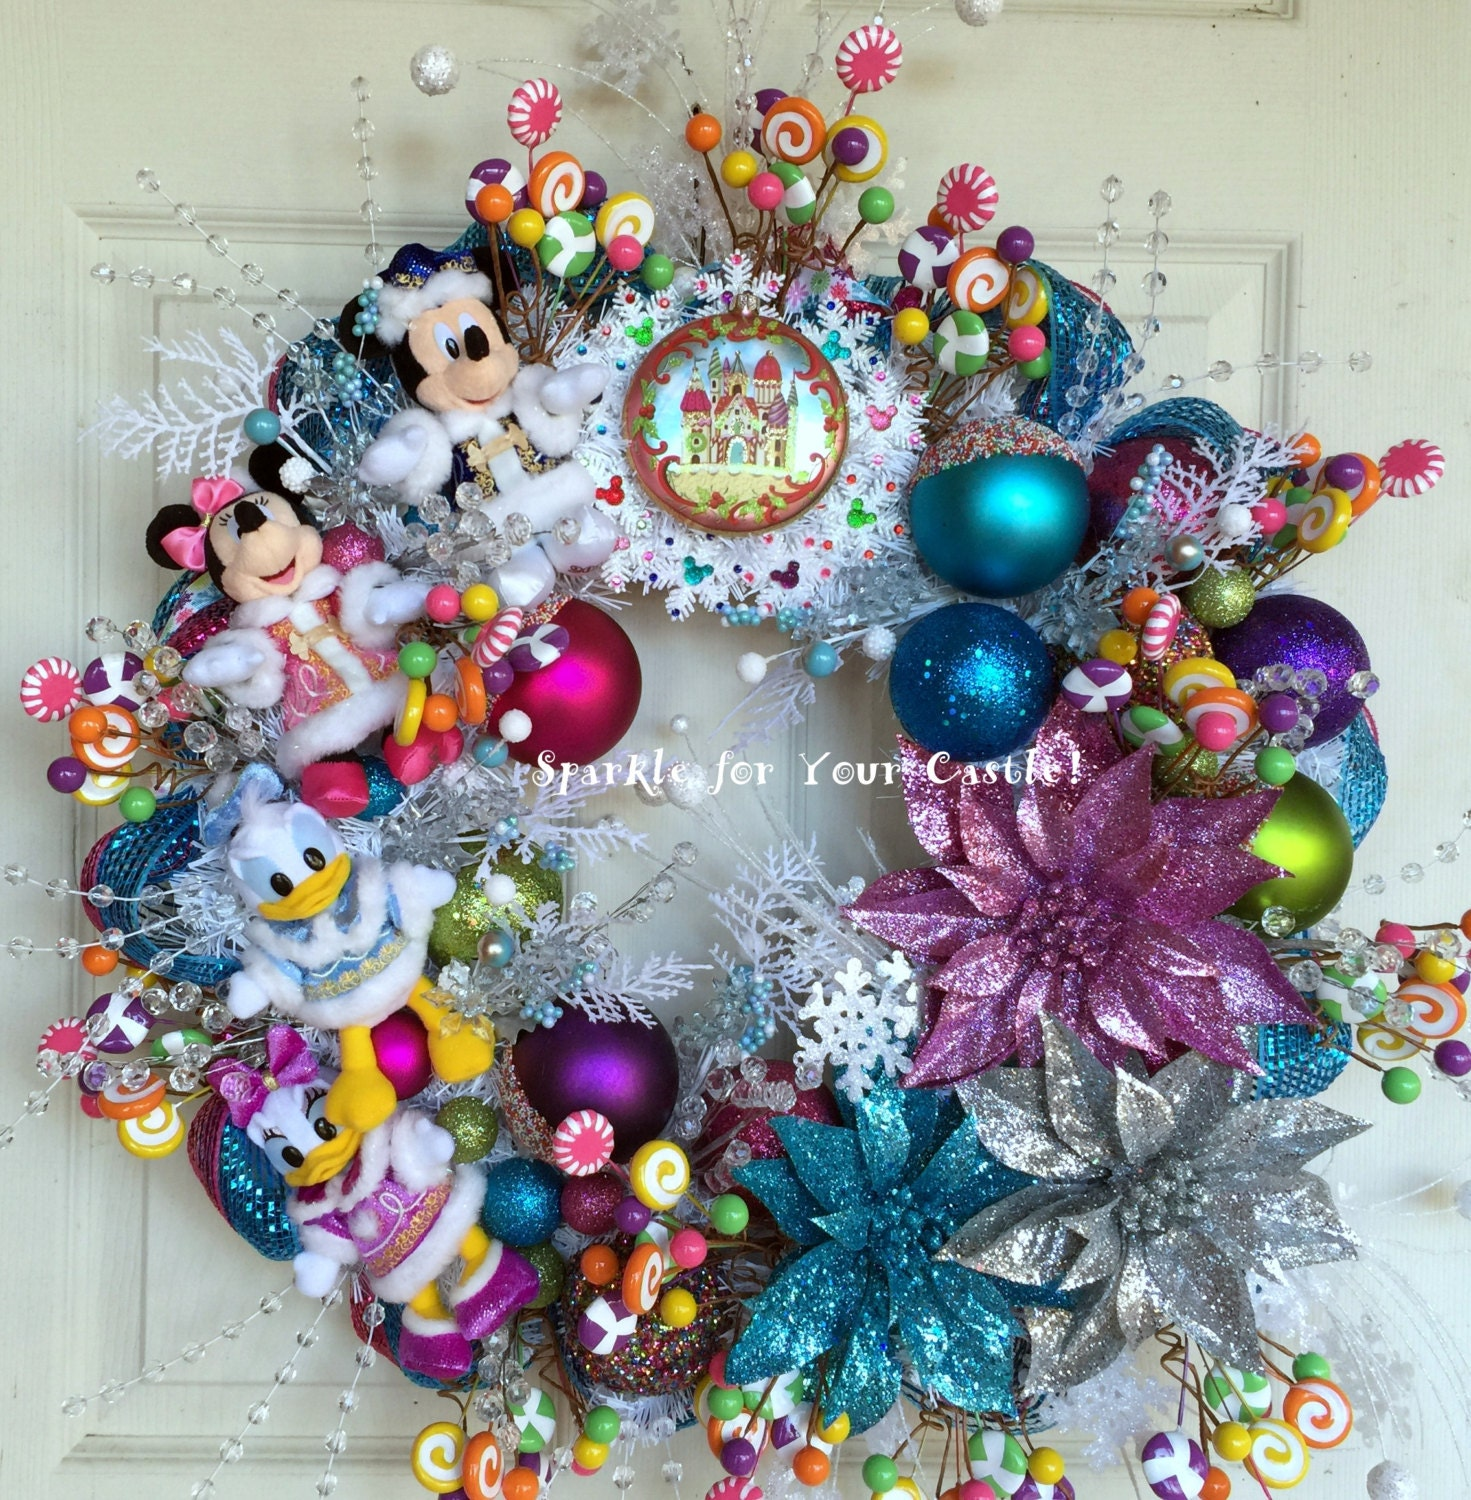 Christmas Decorations For Disneyland: Christmas Disney Wreath Micky Mouse Wreath Tokyo Disney